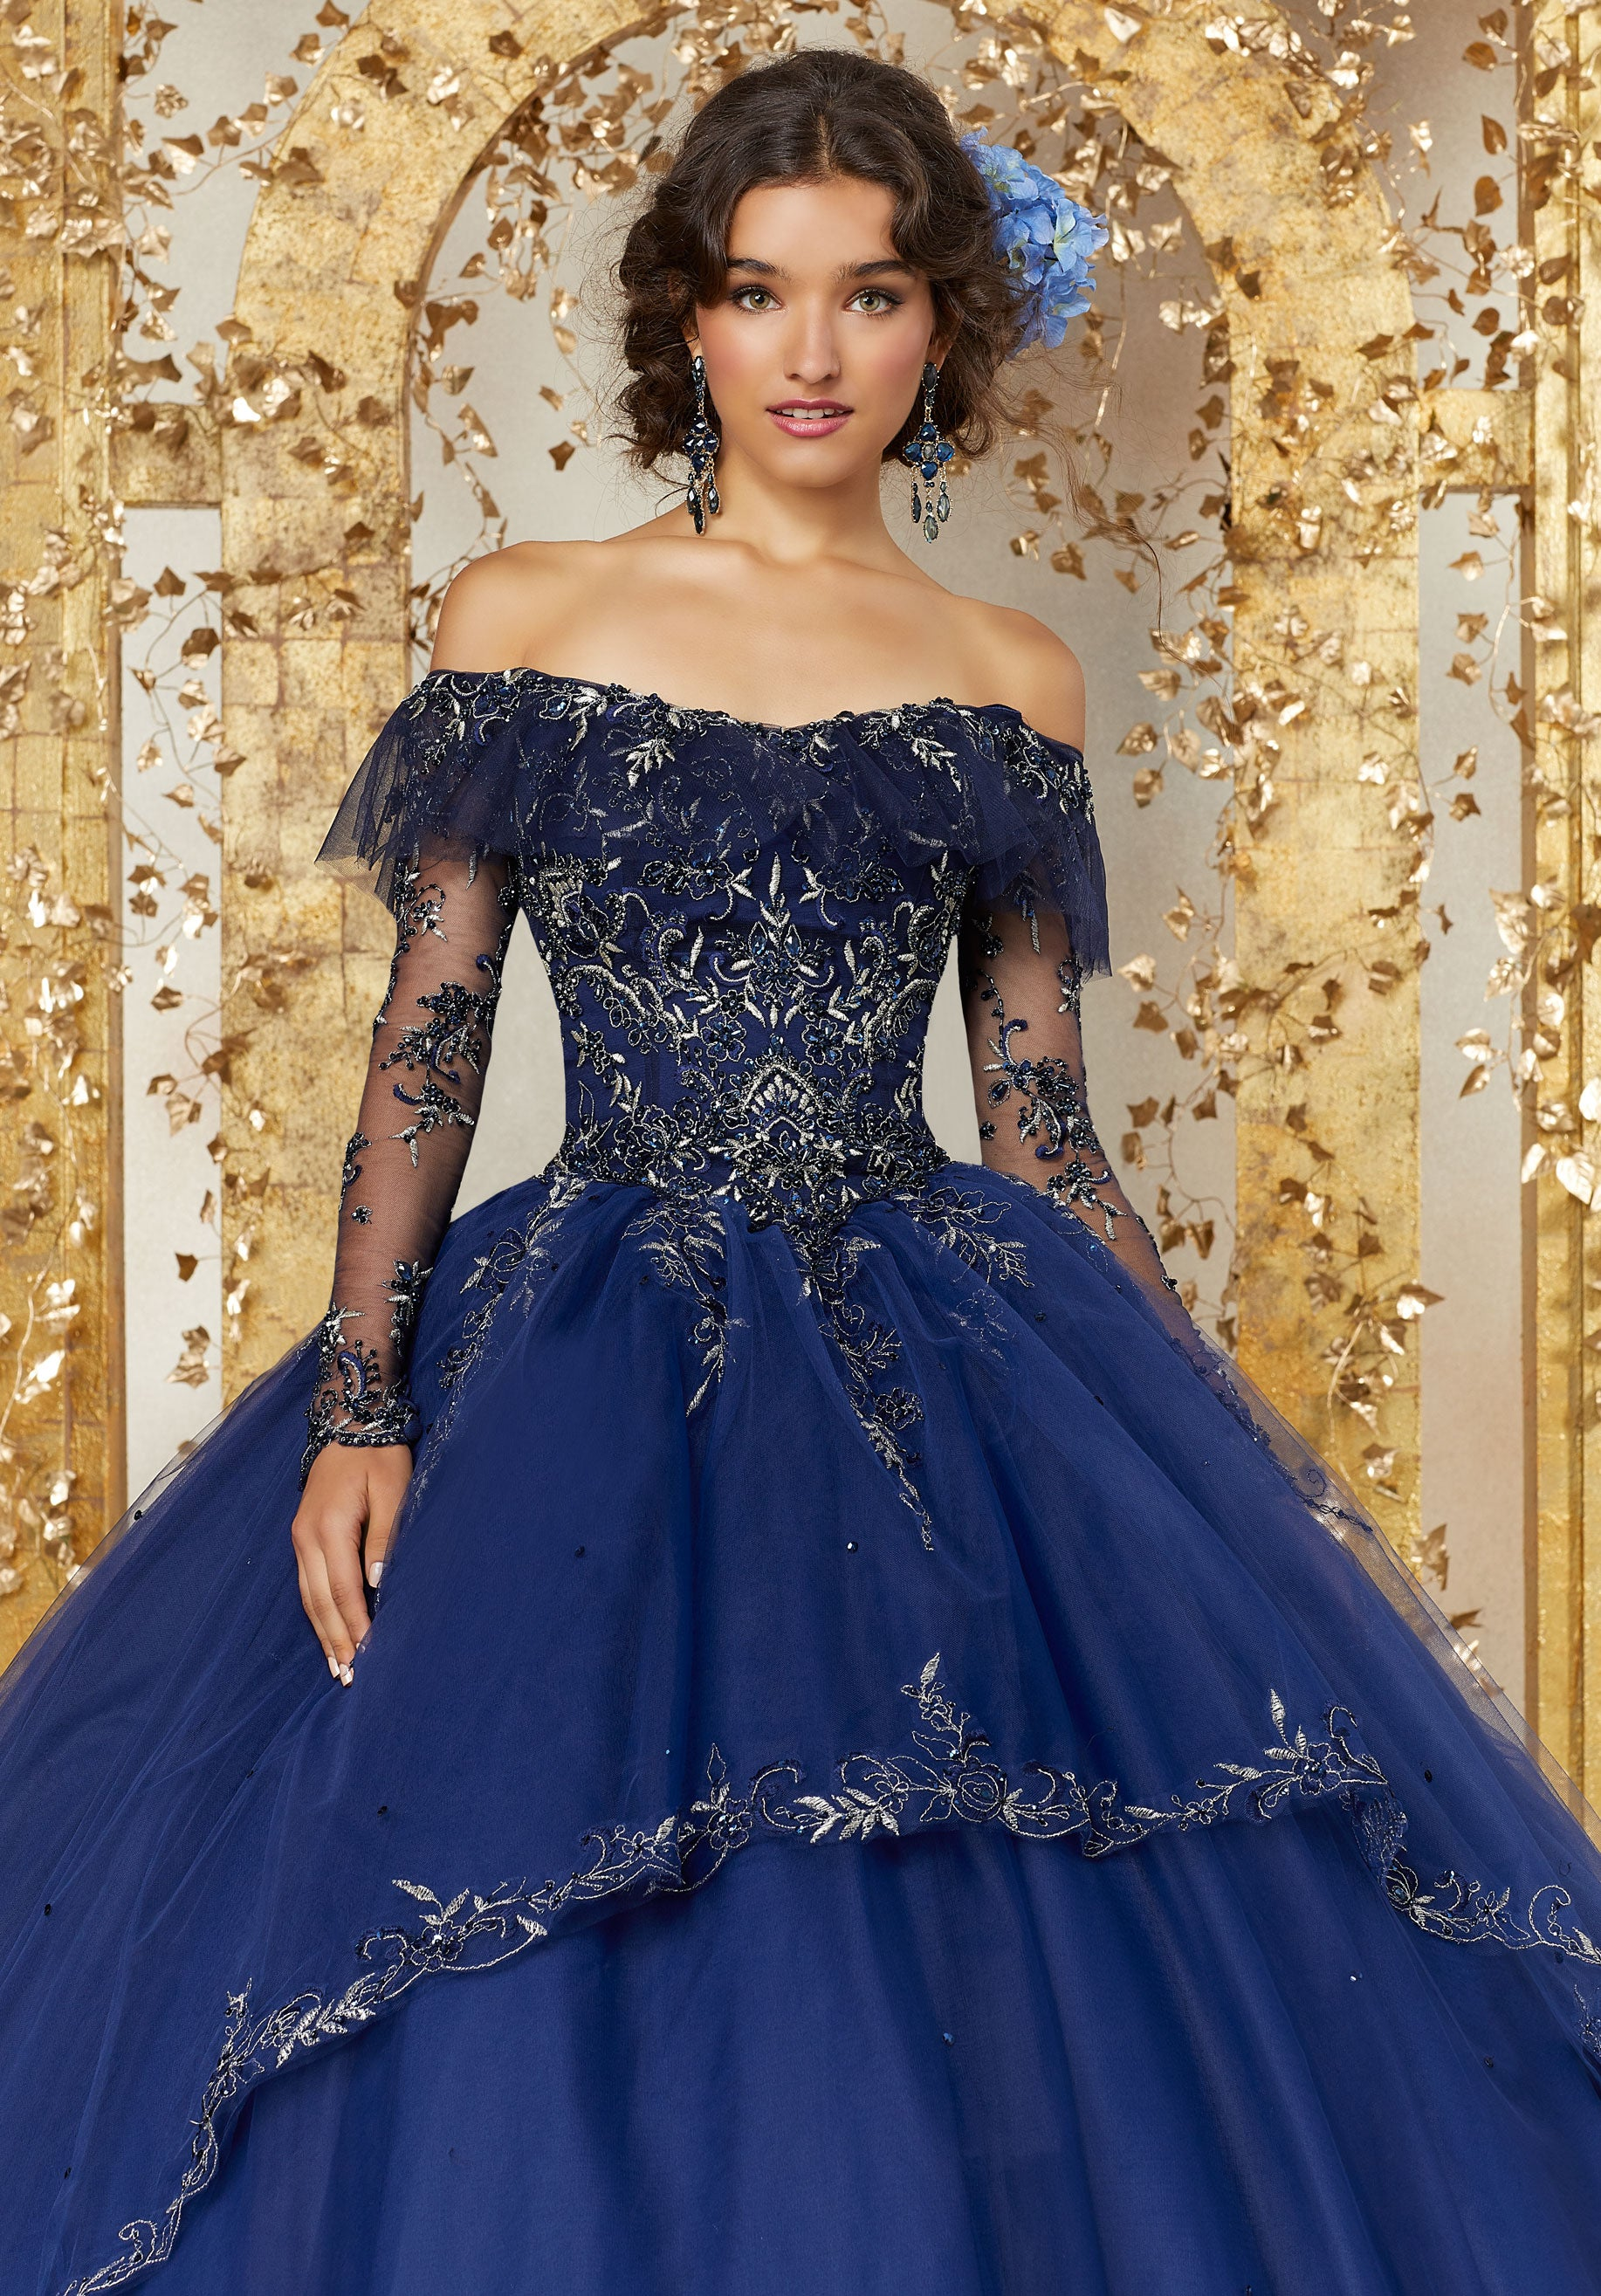 f861d3e21f Off the Shoulder Evening Gown with Embroidery and Beading ...